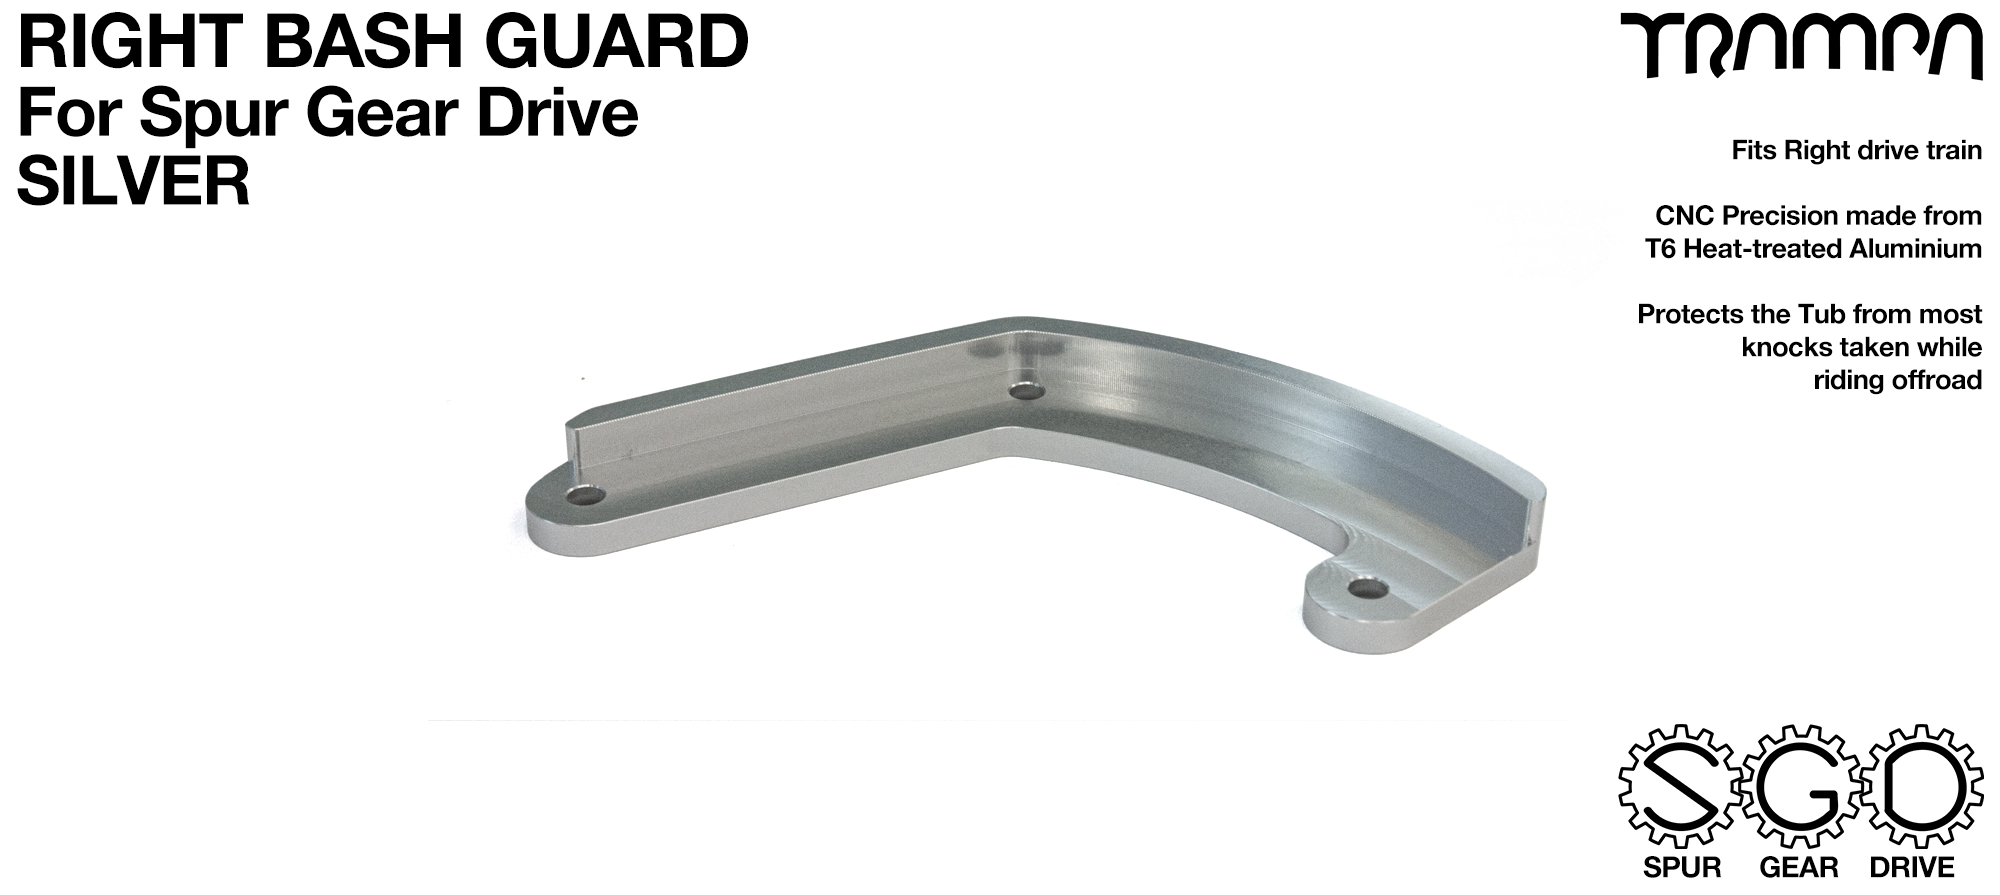 SPUR Gear Drive Bash Guard - RIGHT Side - SILVER